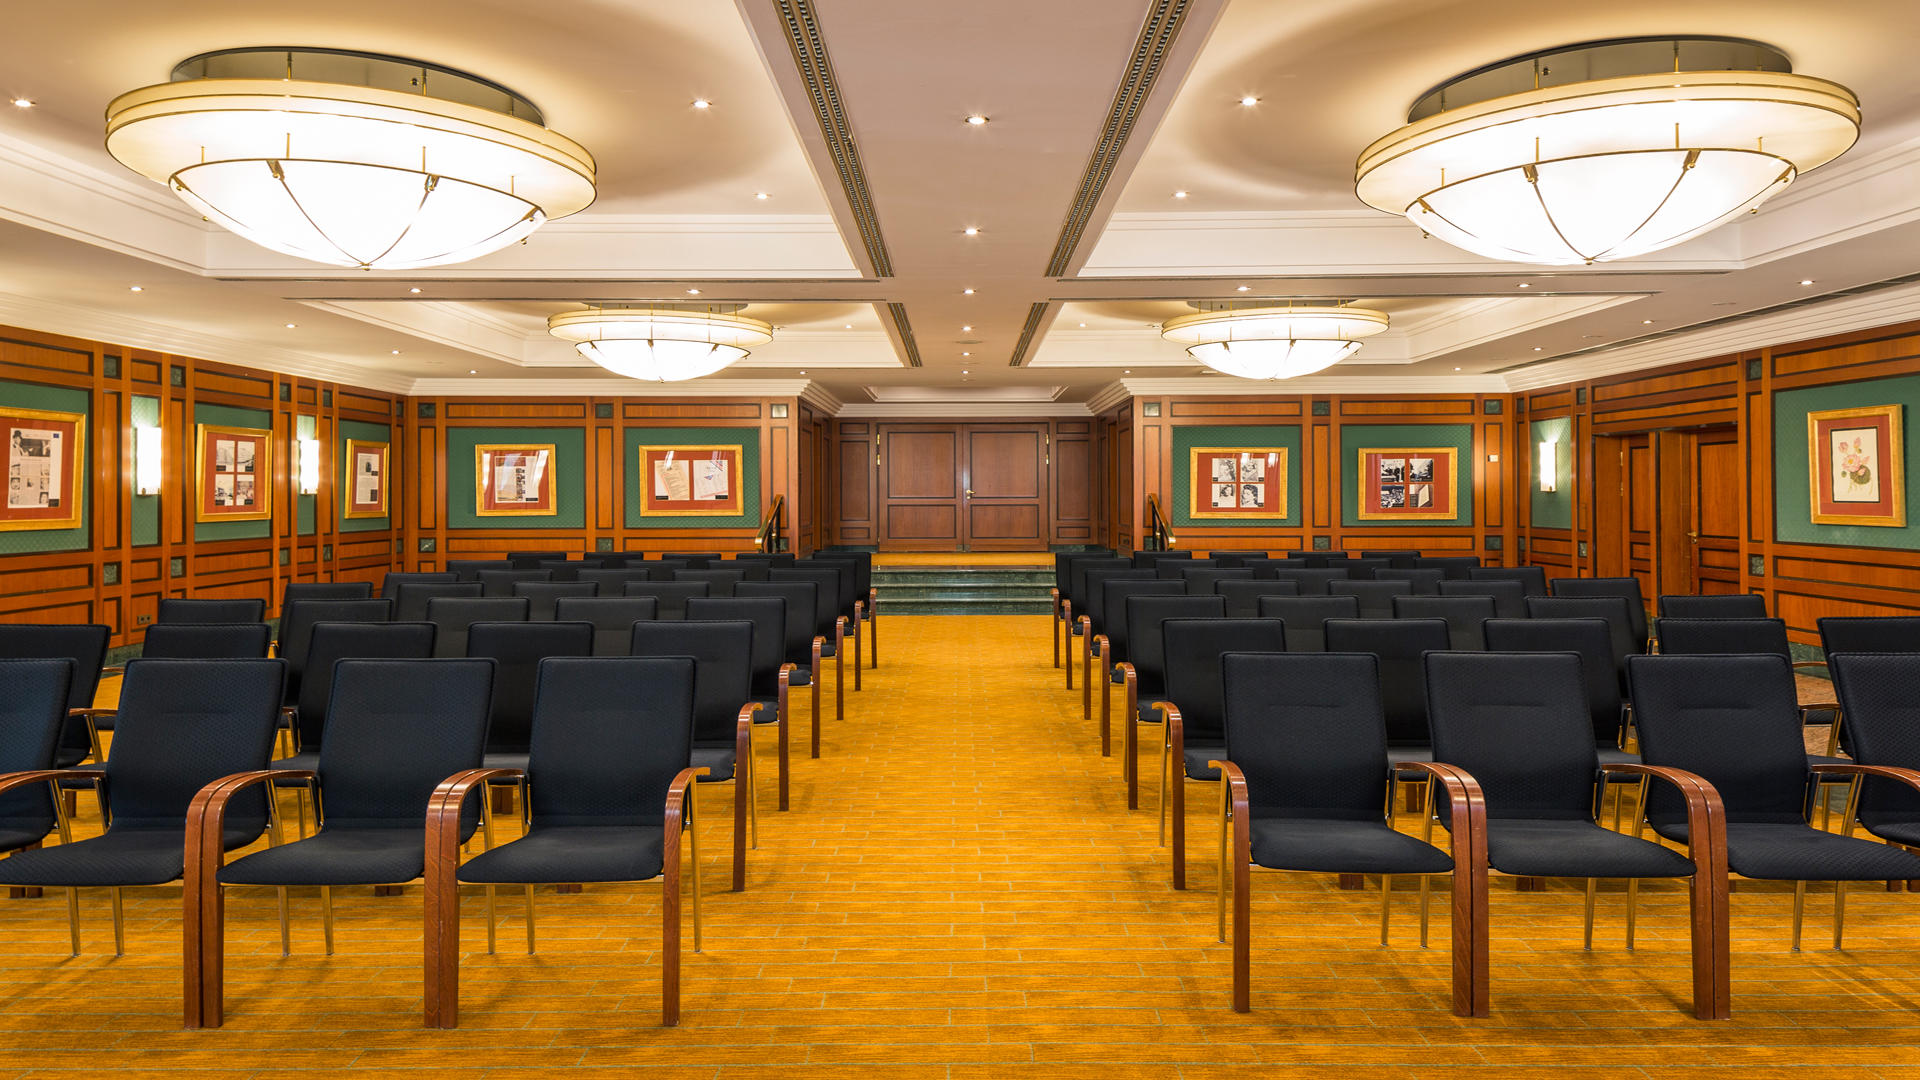 HotelBristolBerlin_Meeting_Berliner-Saal